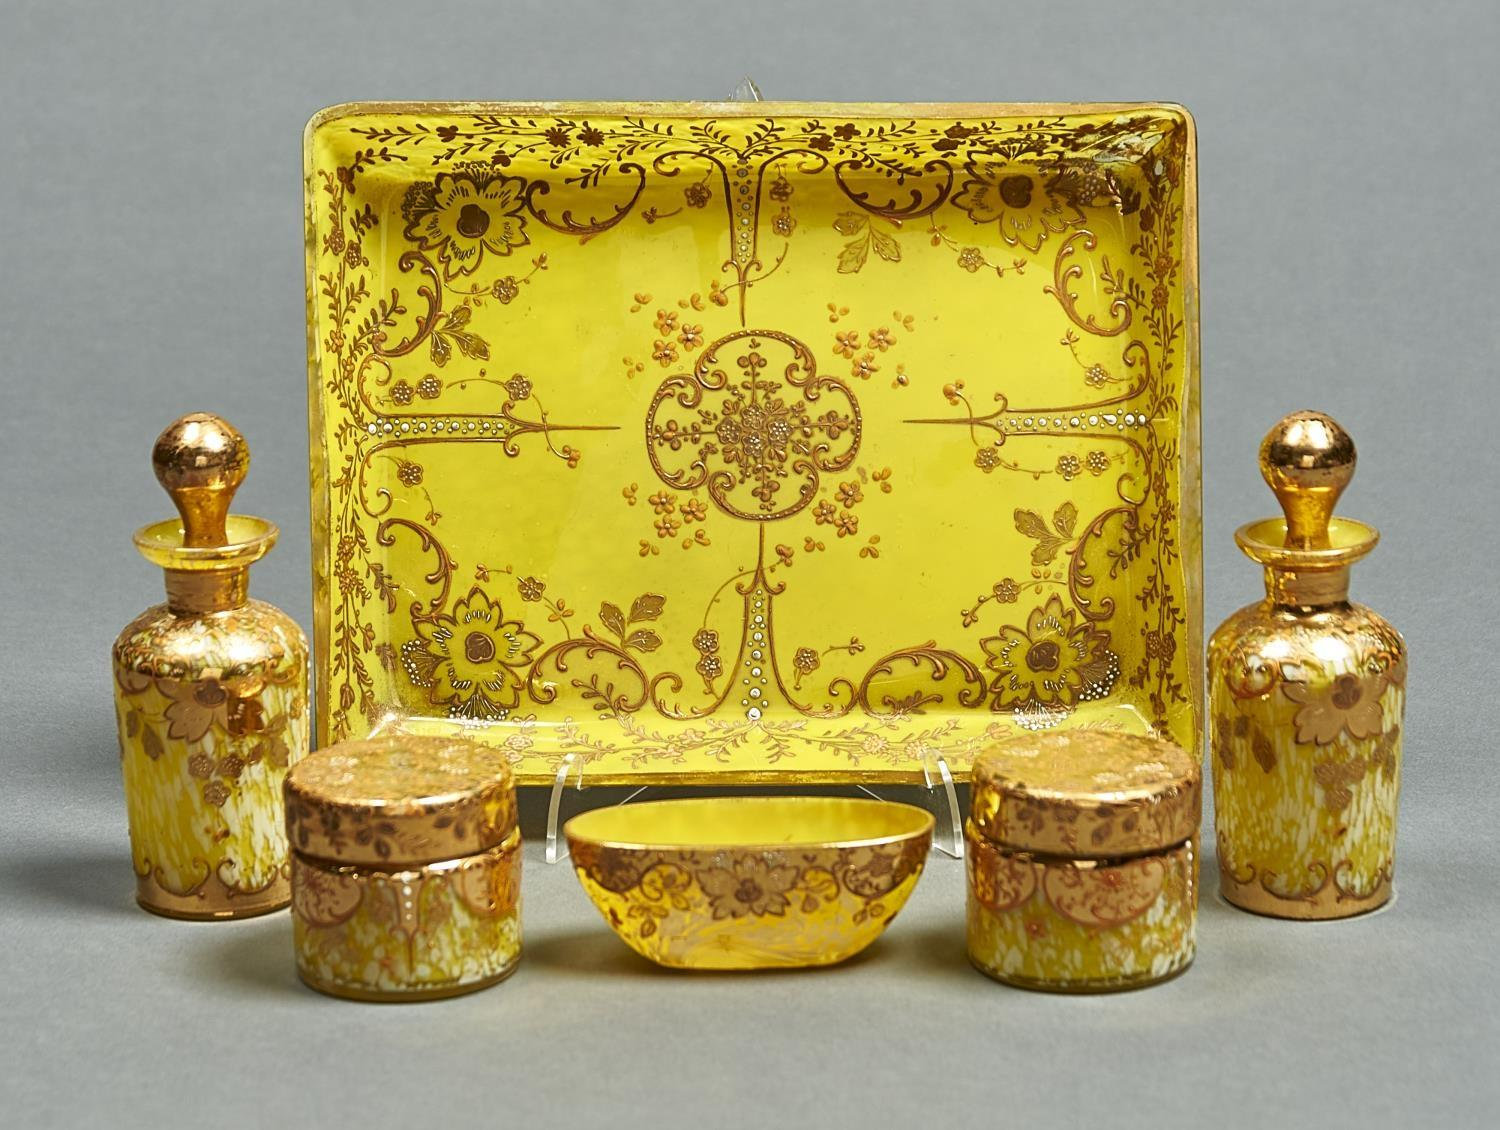 A VENETIAN RICHLY GILT YELLOW AND YELLOW AND WHITE FLECKED GLASS DRESSING TABLE SET, C1900, TO